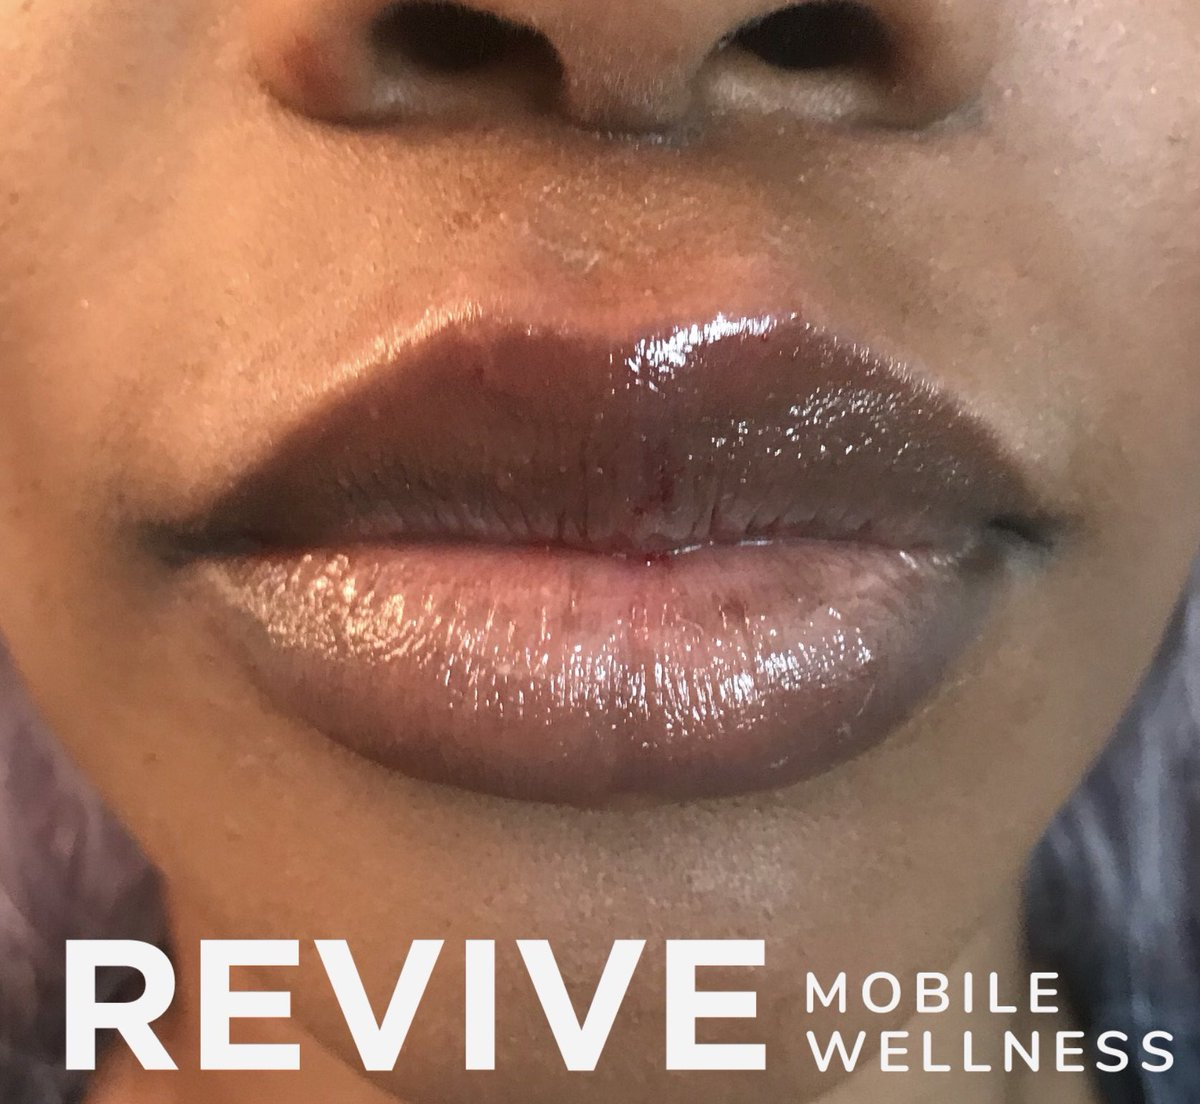 REVIVE mobile wellness (@ReviveMobile) | Twitter